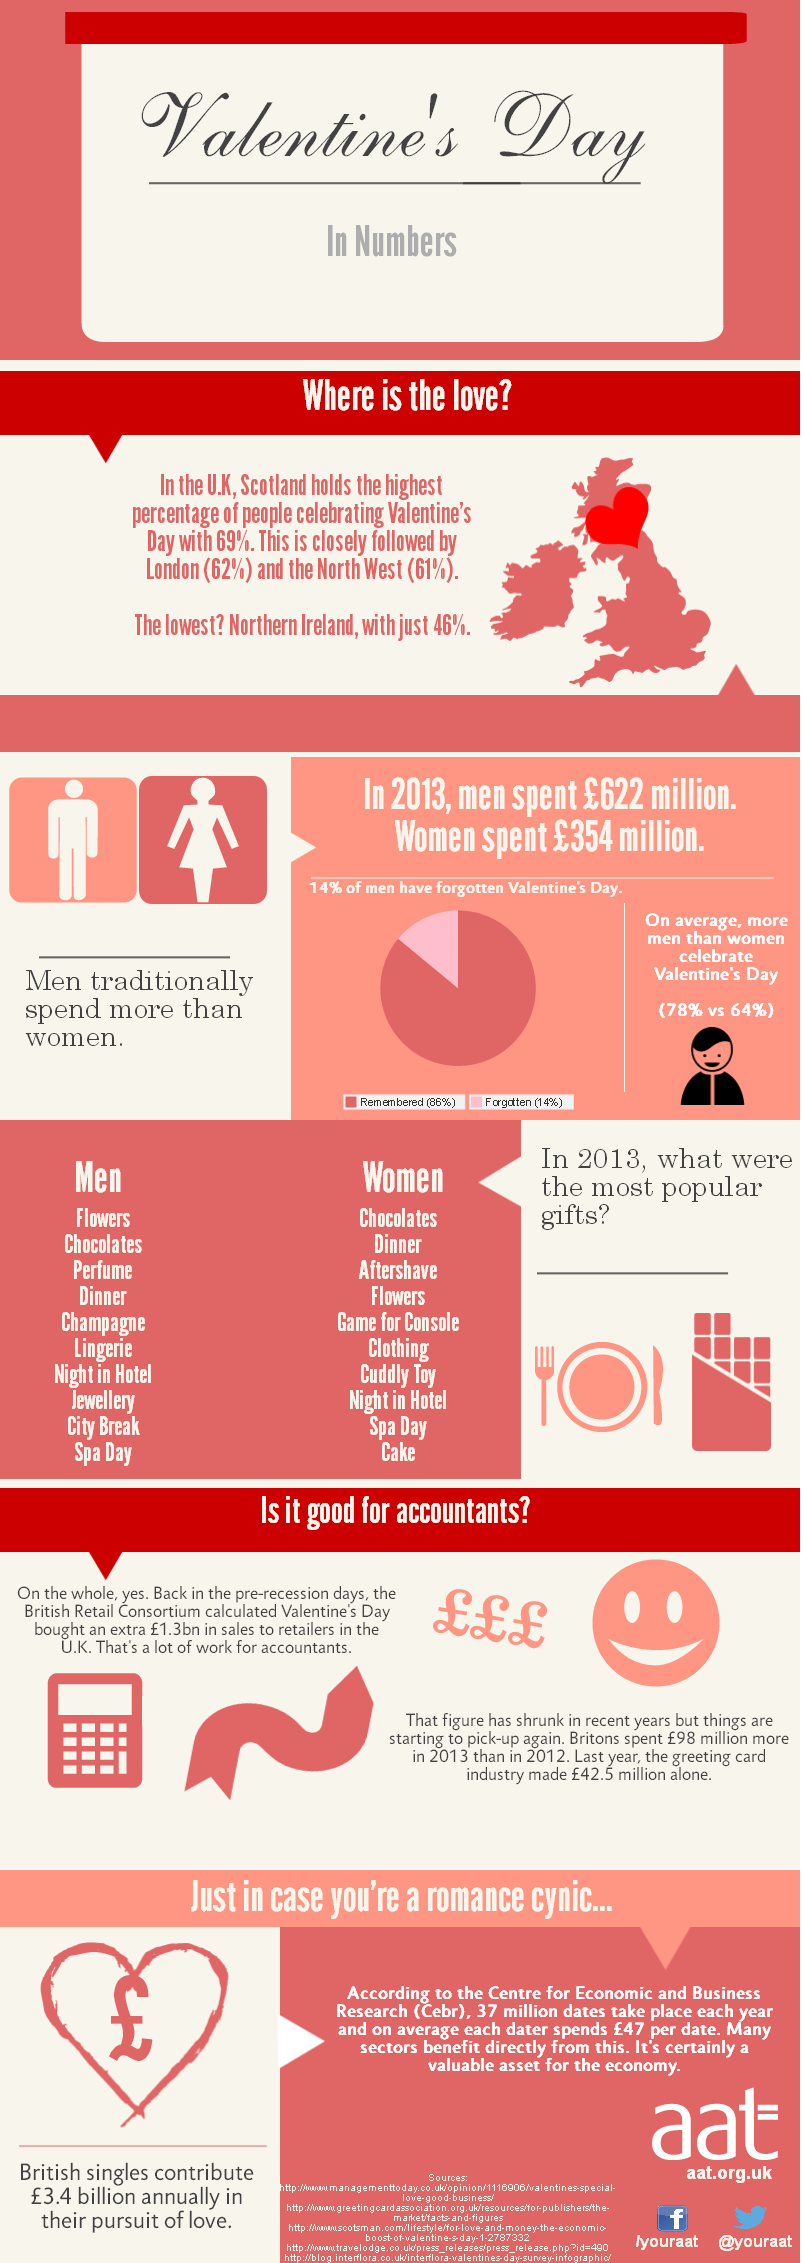 Valentine's Day: in numbers